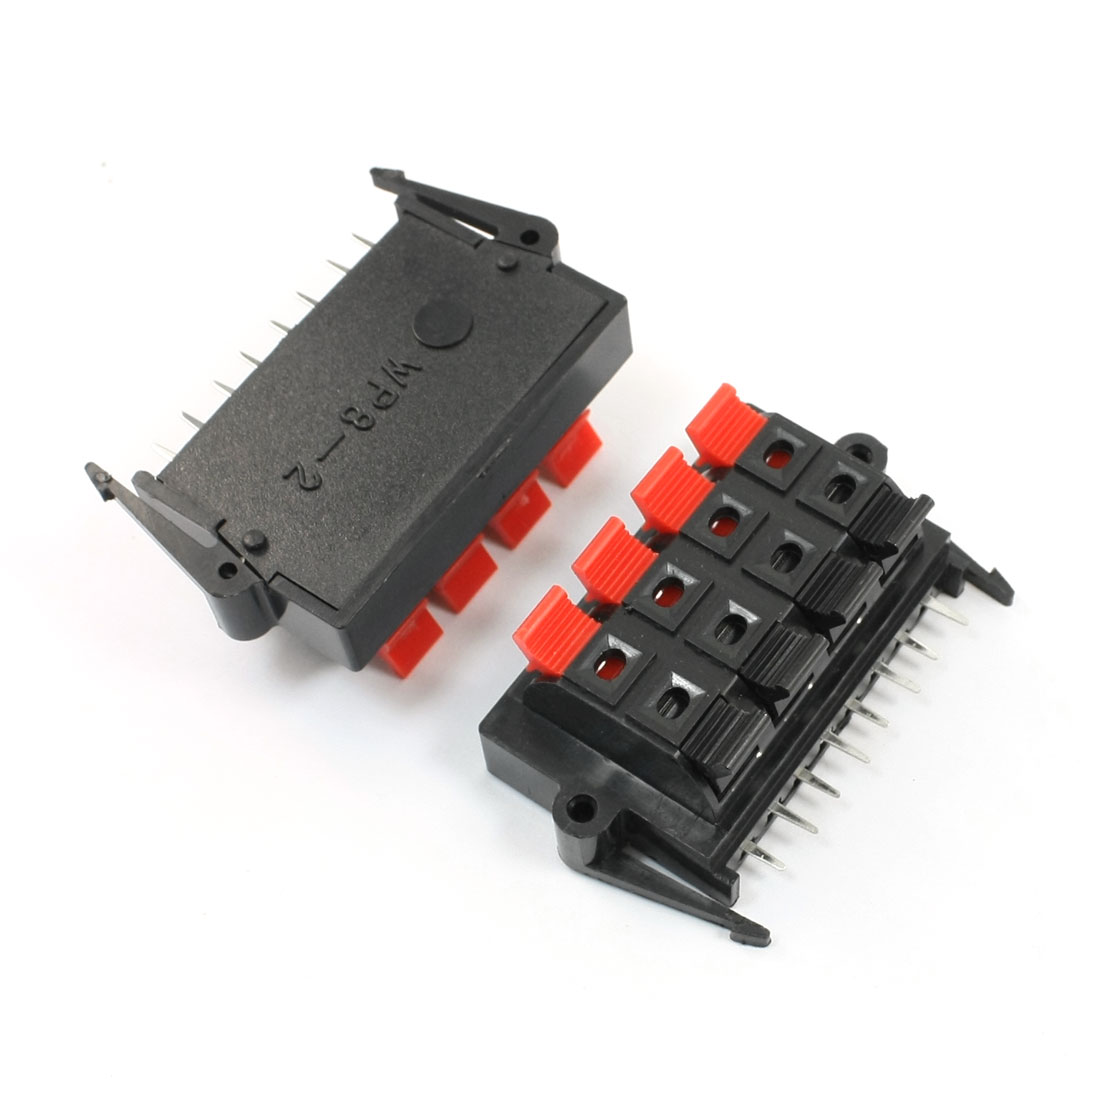 2Pcs Double Row Spring Loaded Clamping Speaker Terminal 8 Positon 8 Pin